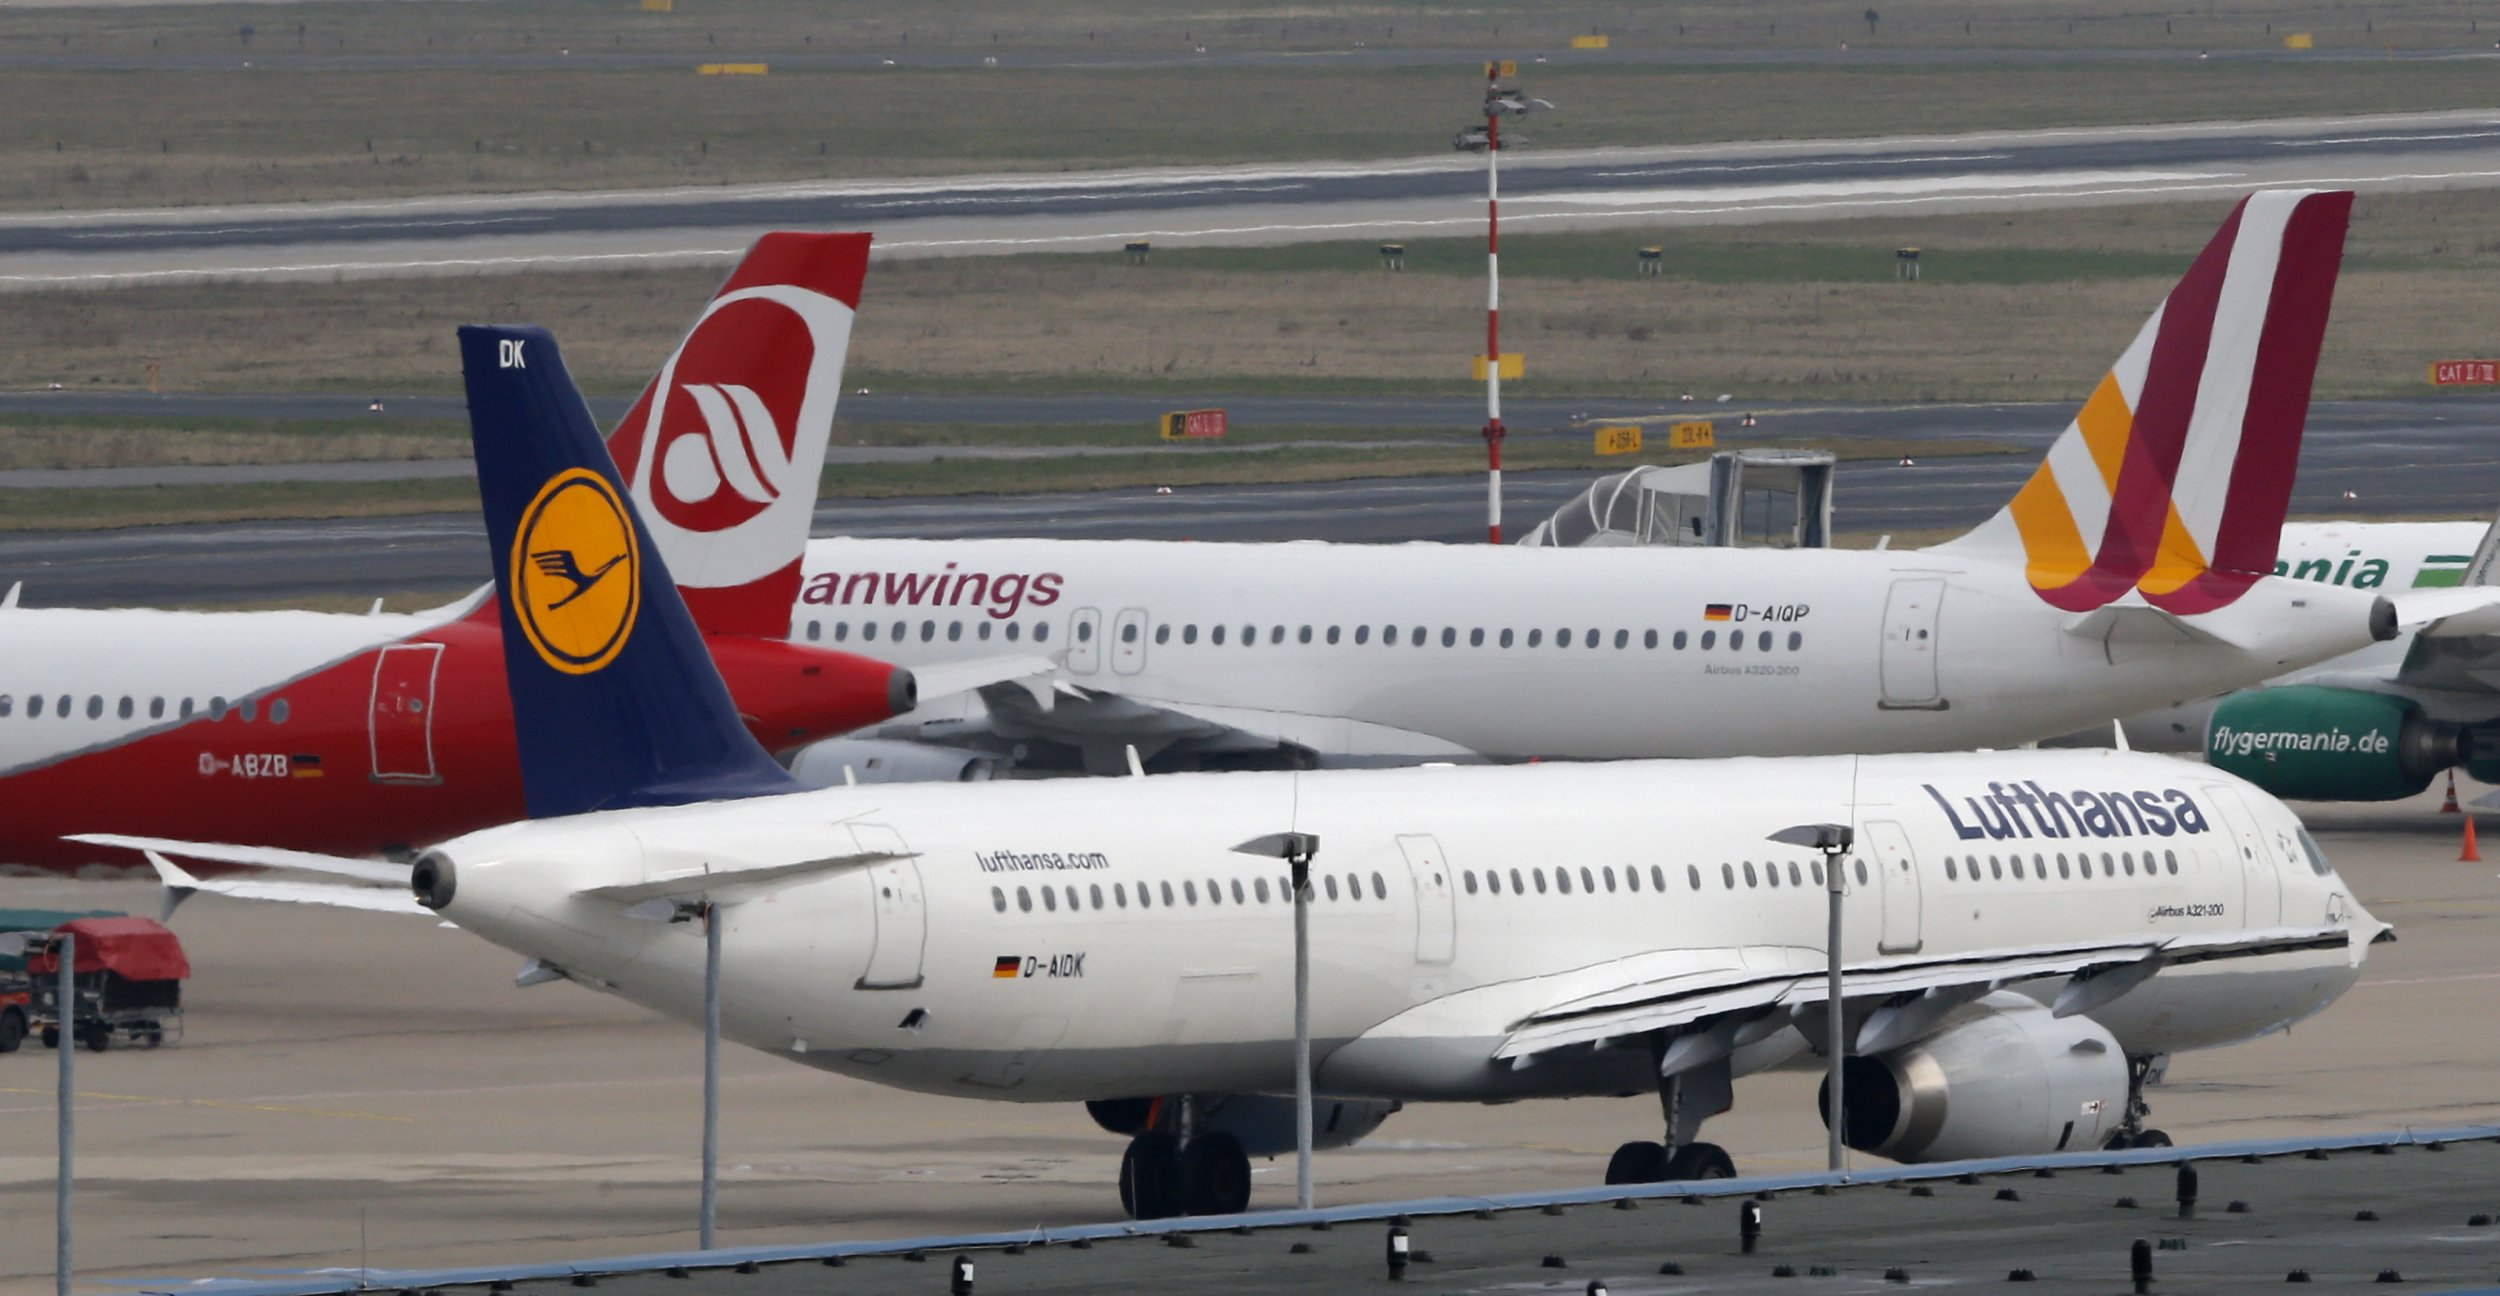 A Lufthansa Airbus A318 plane with relatives of people who died in a plane crash in the French Alps, taxi at the Duesseldorf airport March 26, 2015.